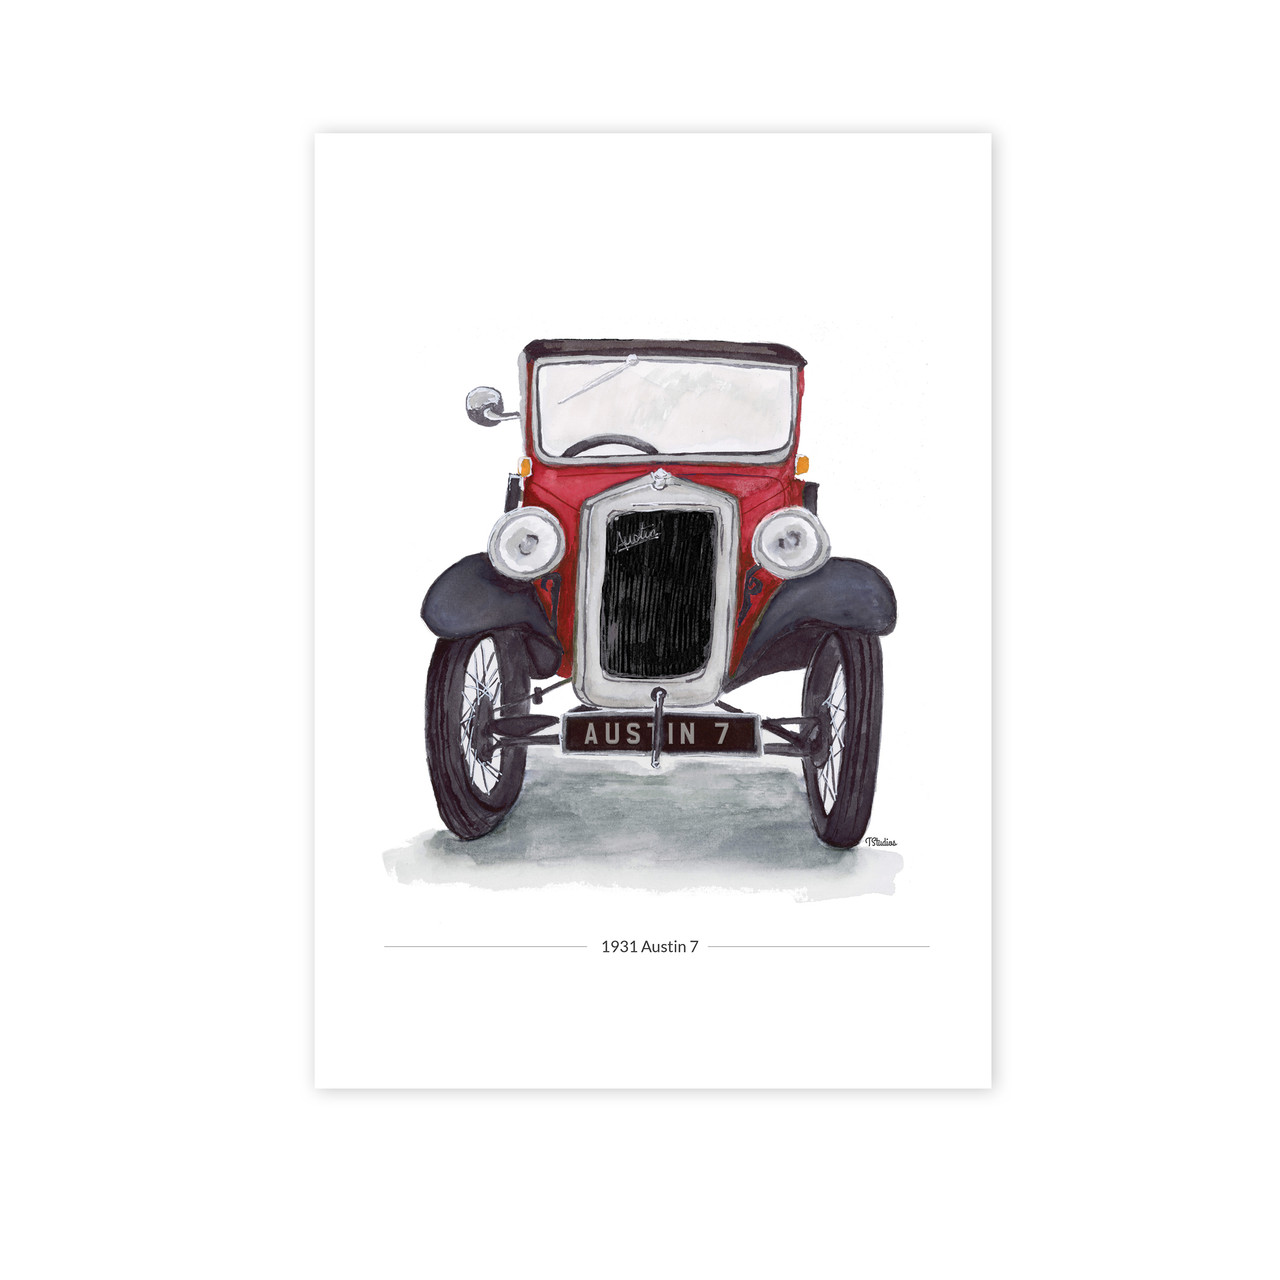 Austin 7 Saloon Front View Illustration In Red Giclee Car Print Typhoon Studios